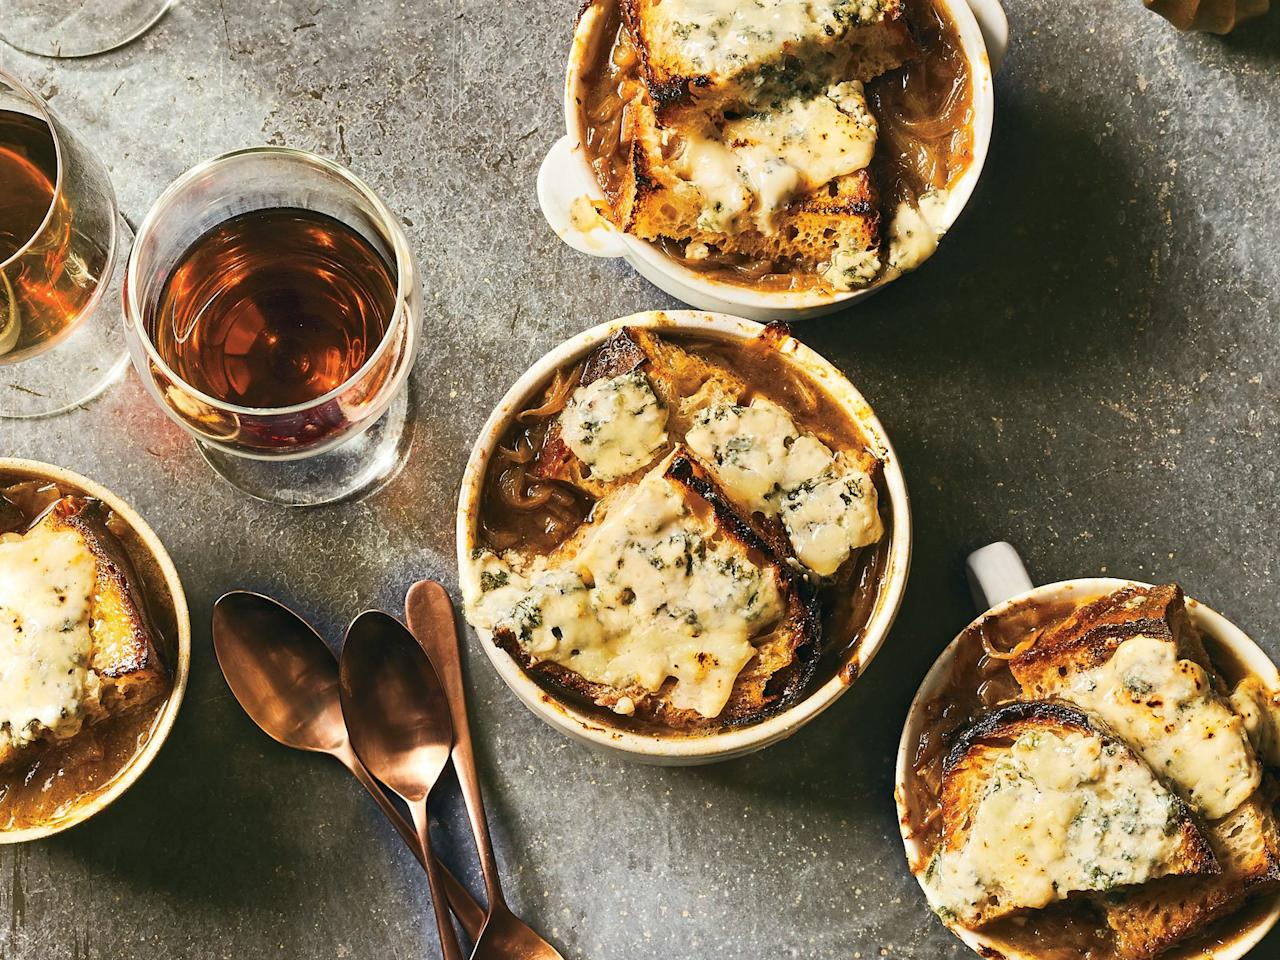 """<p>In this vegetarian version of classic French onion soup, blue cheese and oloroso sherry bring new layers of flavor and depth. Notes of toasted nuts and fruit compote in the sherry pair well with caramelized onions, and its briny acidity cuts through the richness of the cheese.</p> <p> <a href=""""https://www.foodandwine.com/recipes/caramelized-onion-and-bread-soupwith-bruleed-blue-cheese"""">Go to Reicpe</a></p>"""